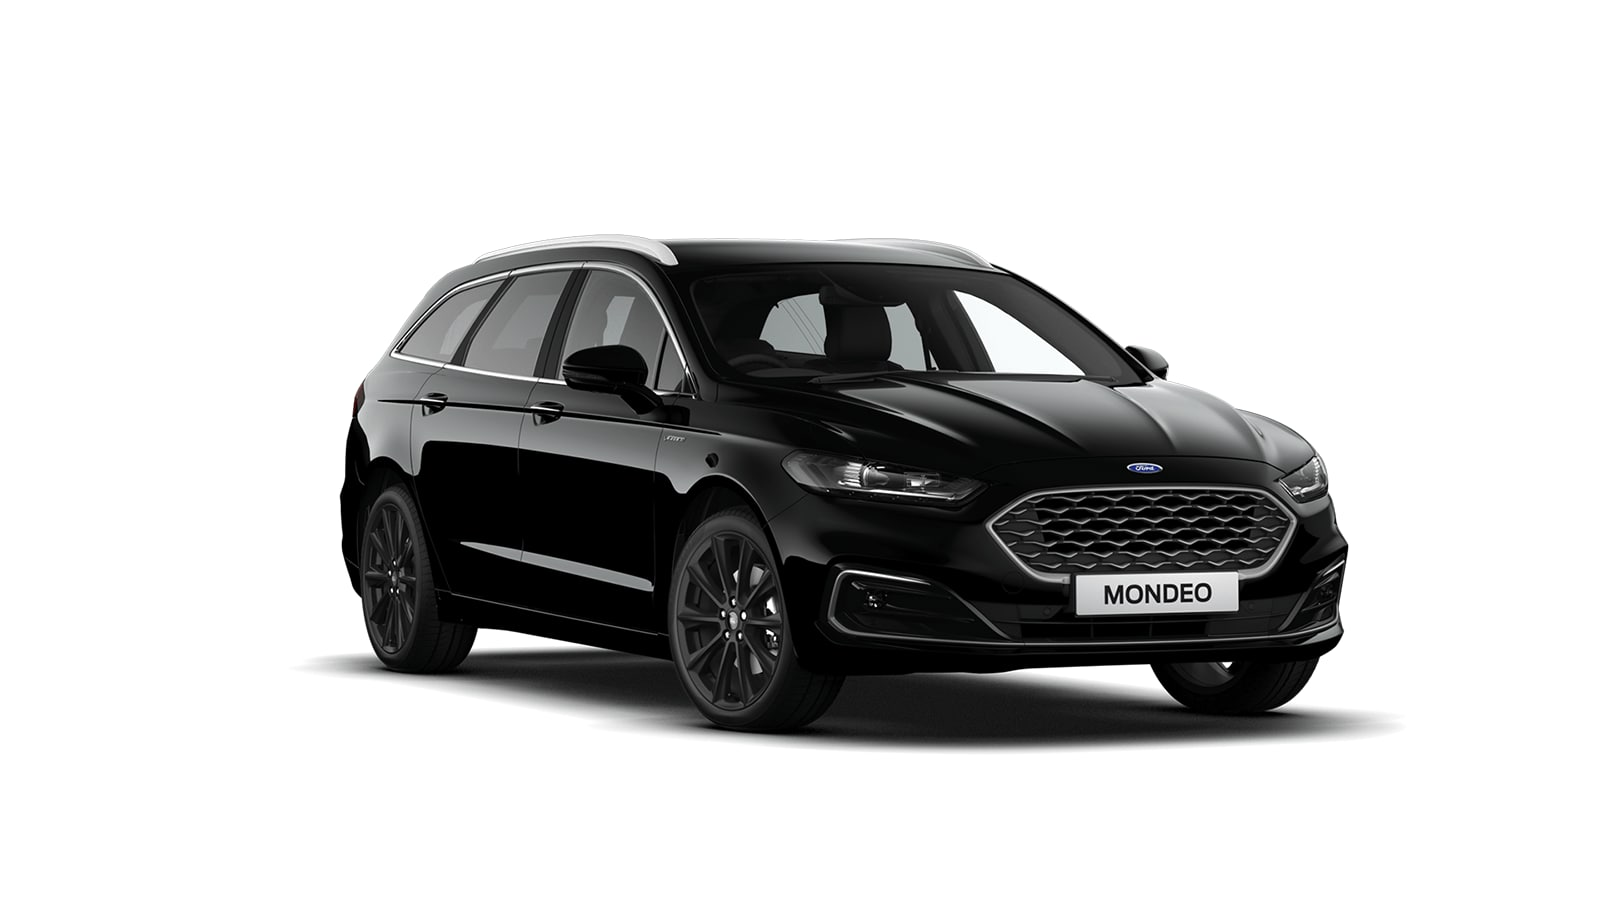 New Ford Mondeo Hybrid at RGR Garages